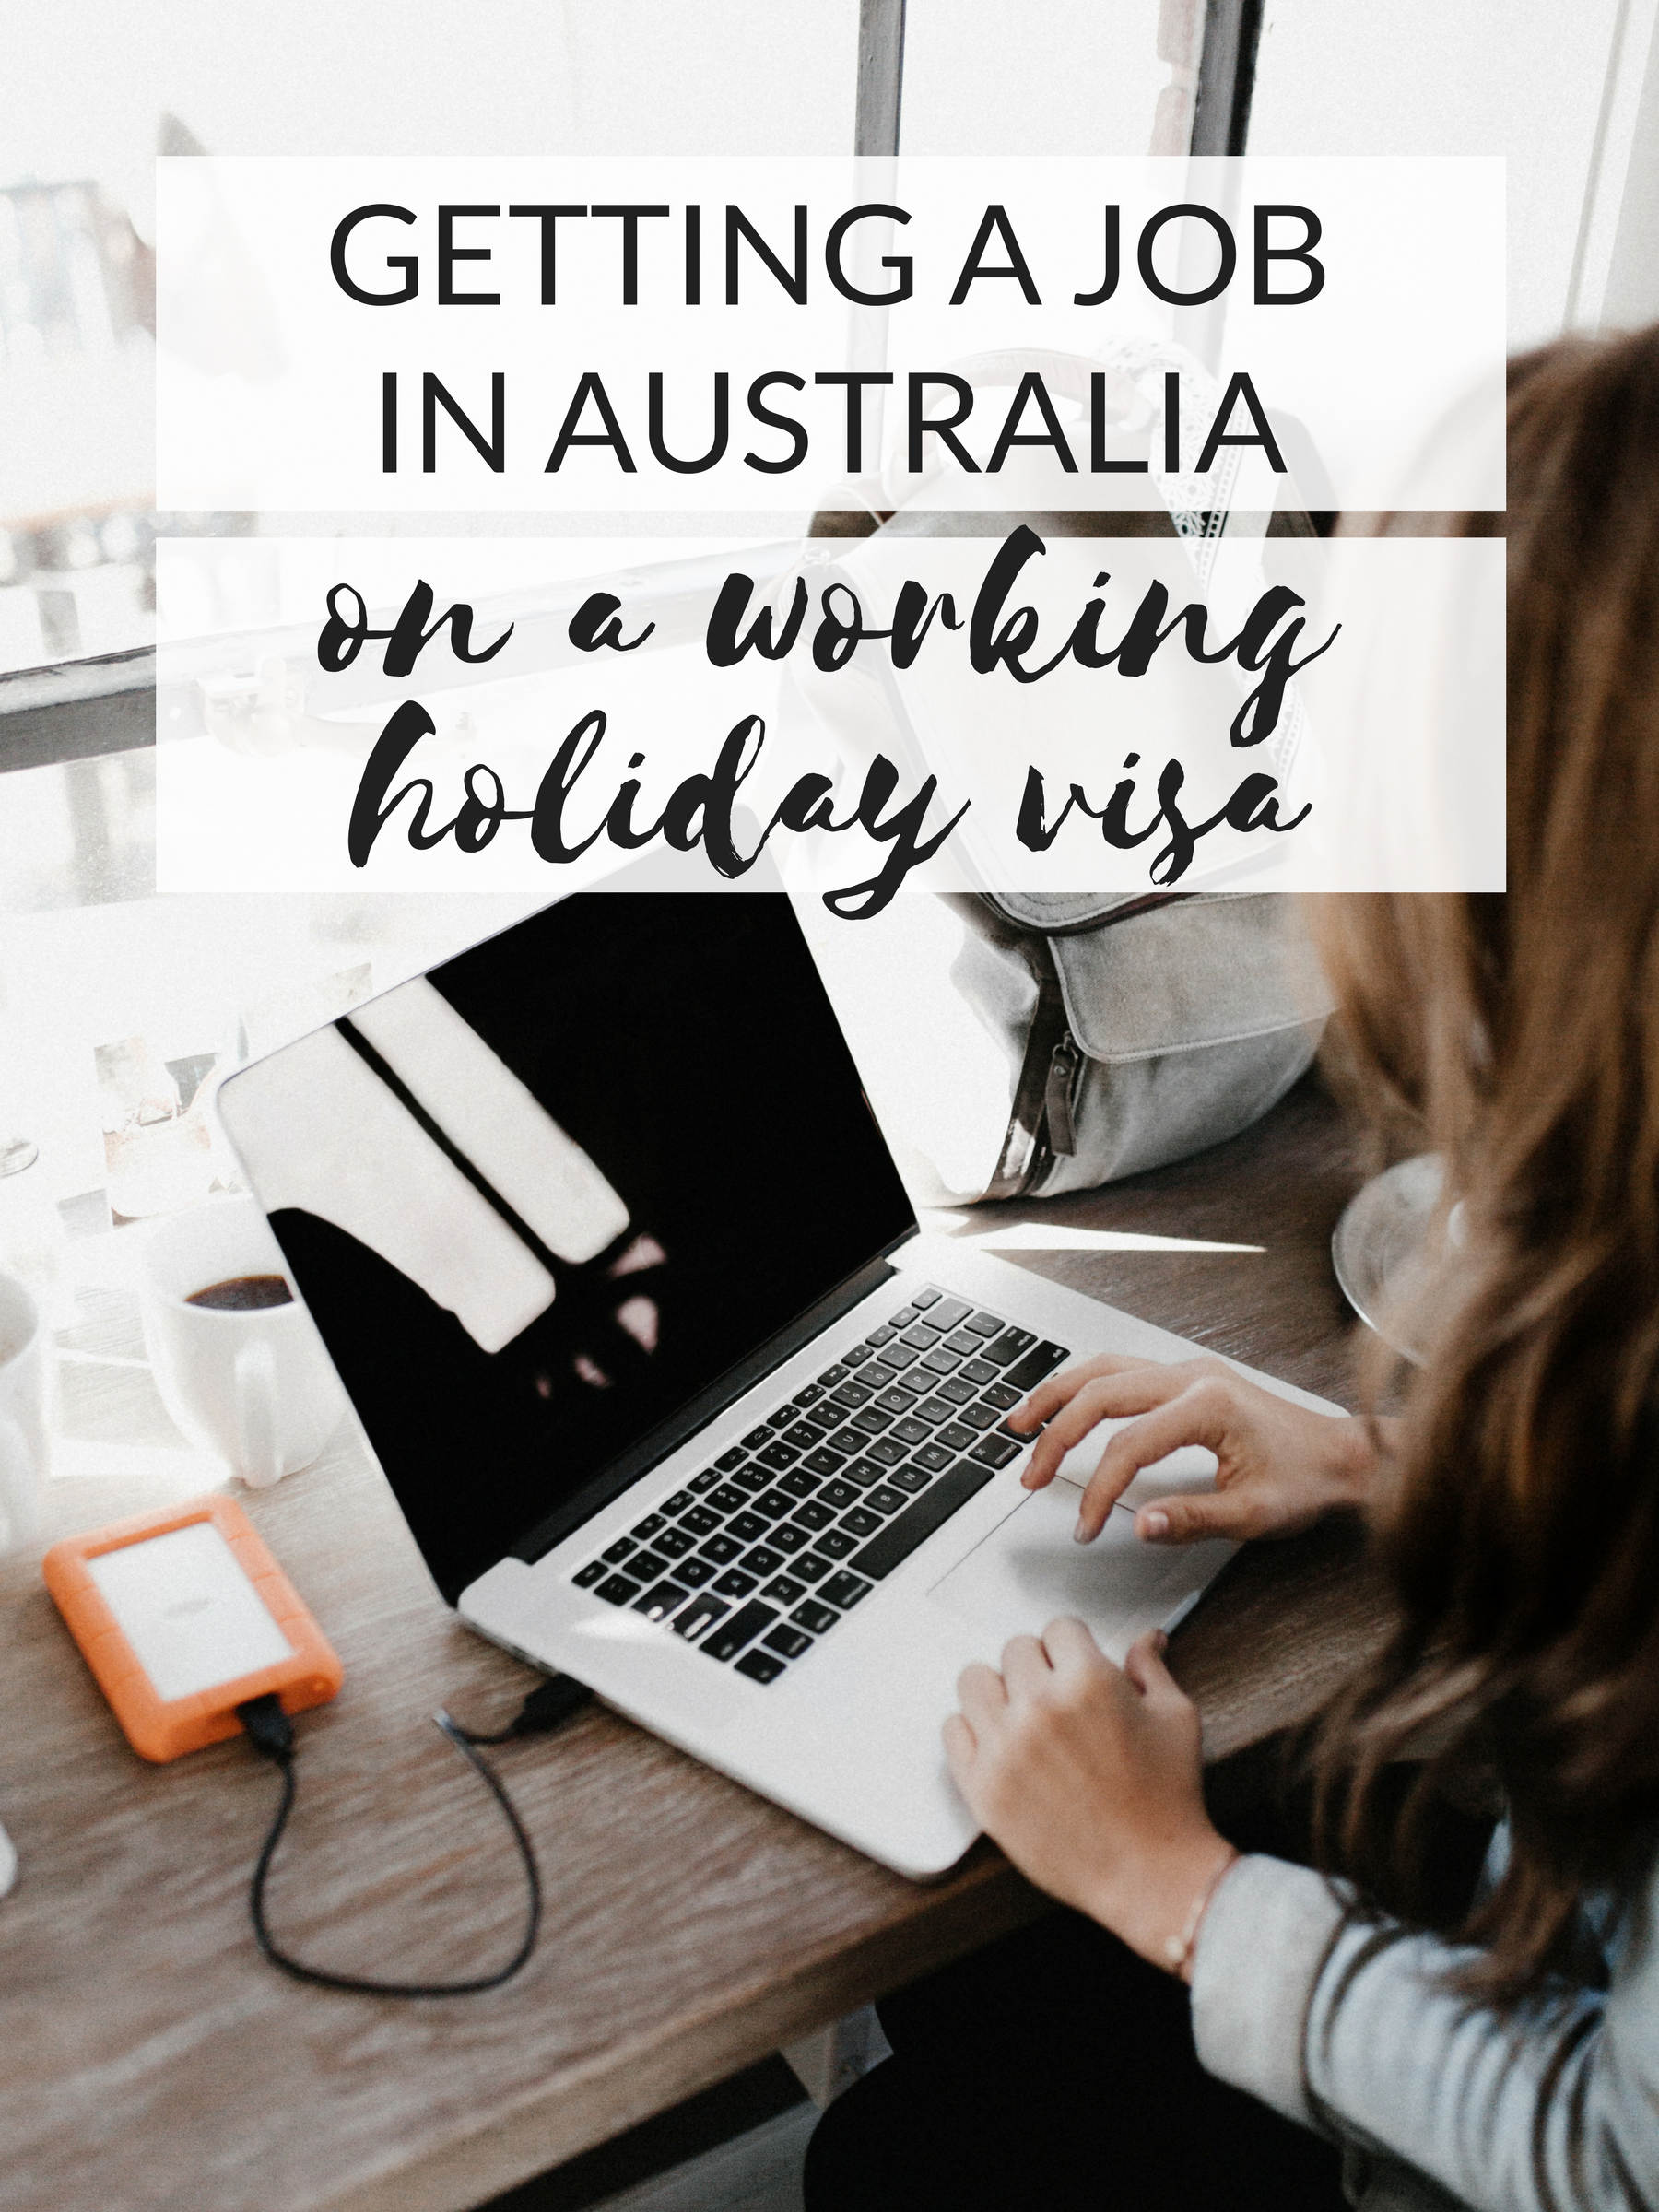 Getting a job in Australia on a working holiday visa